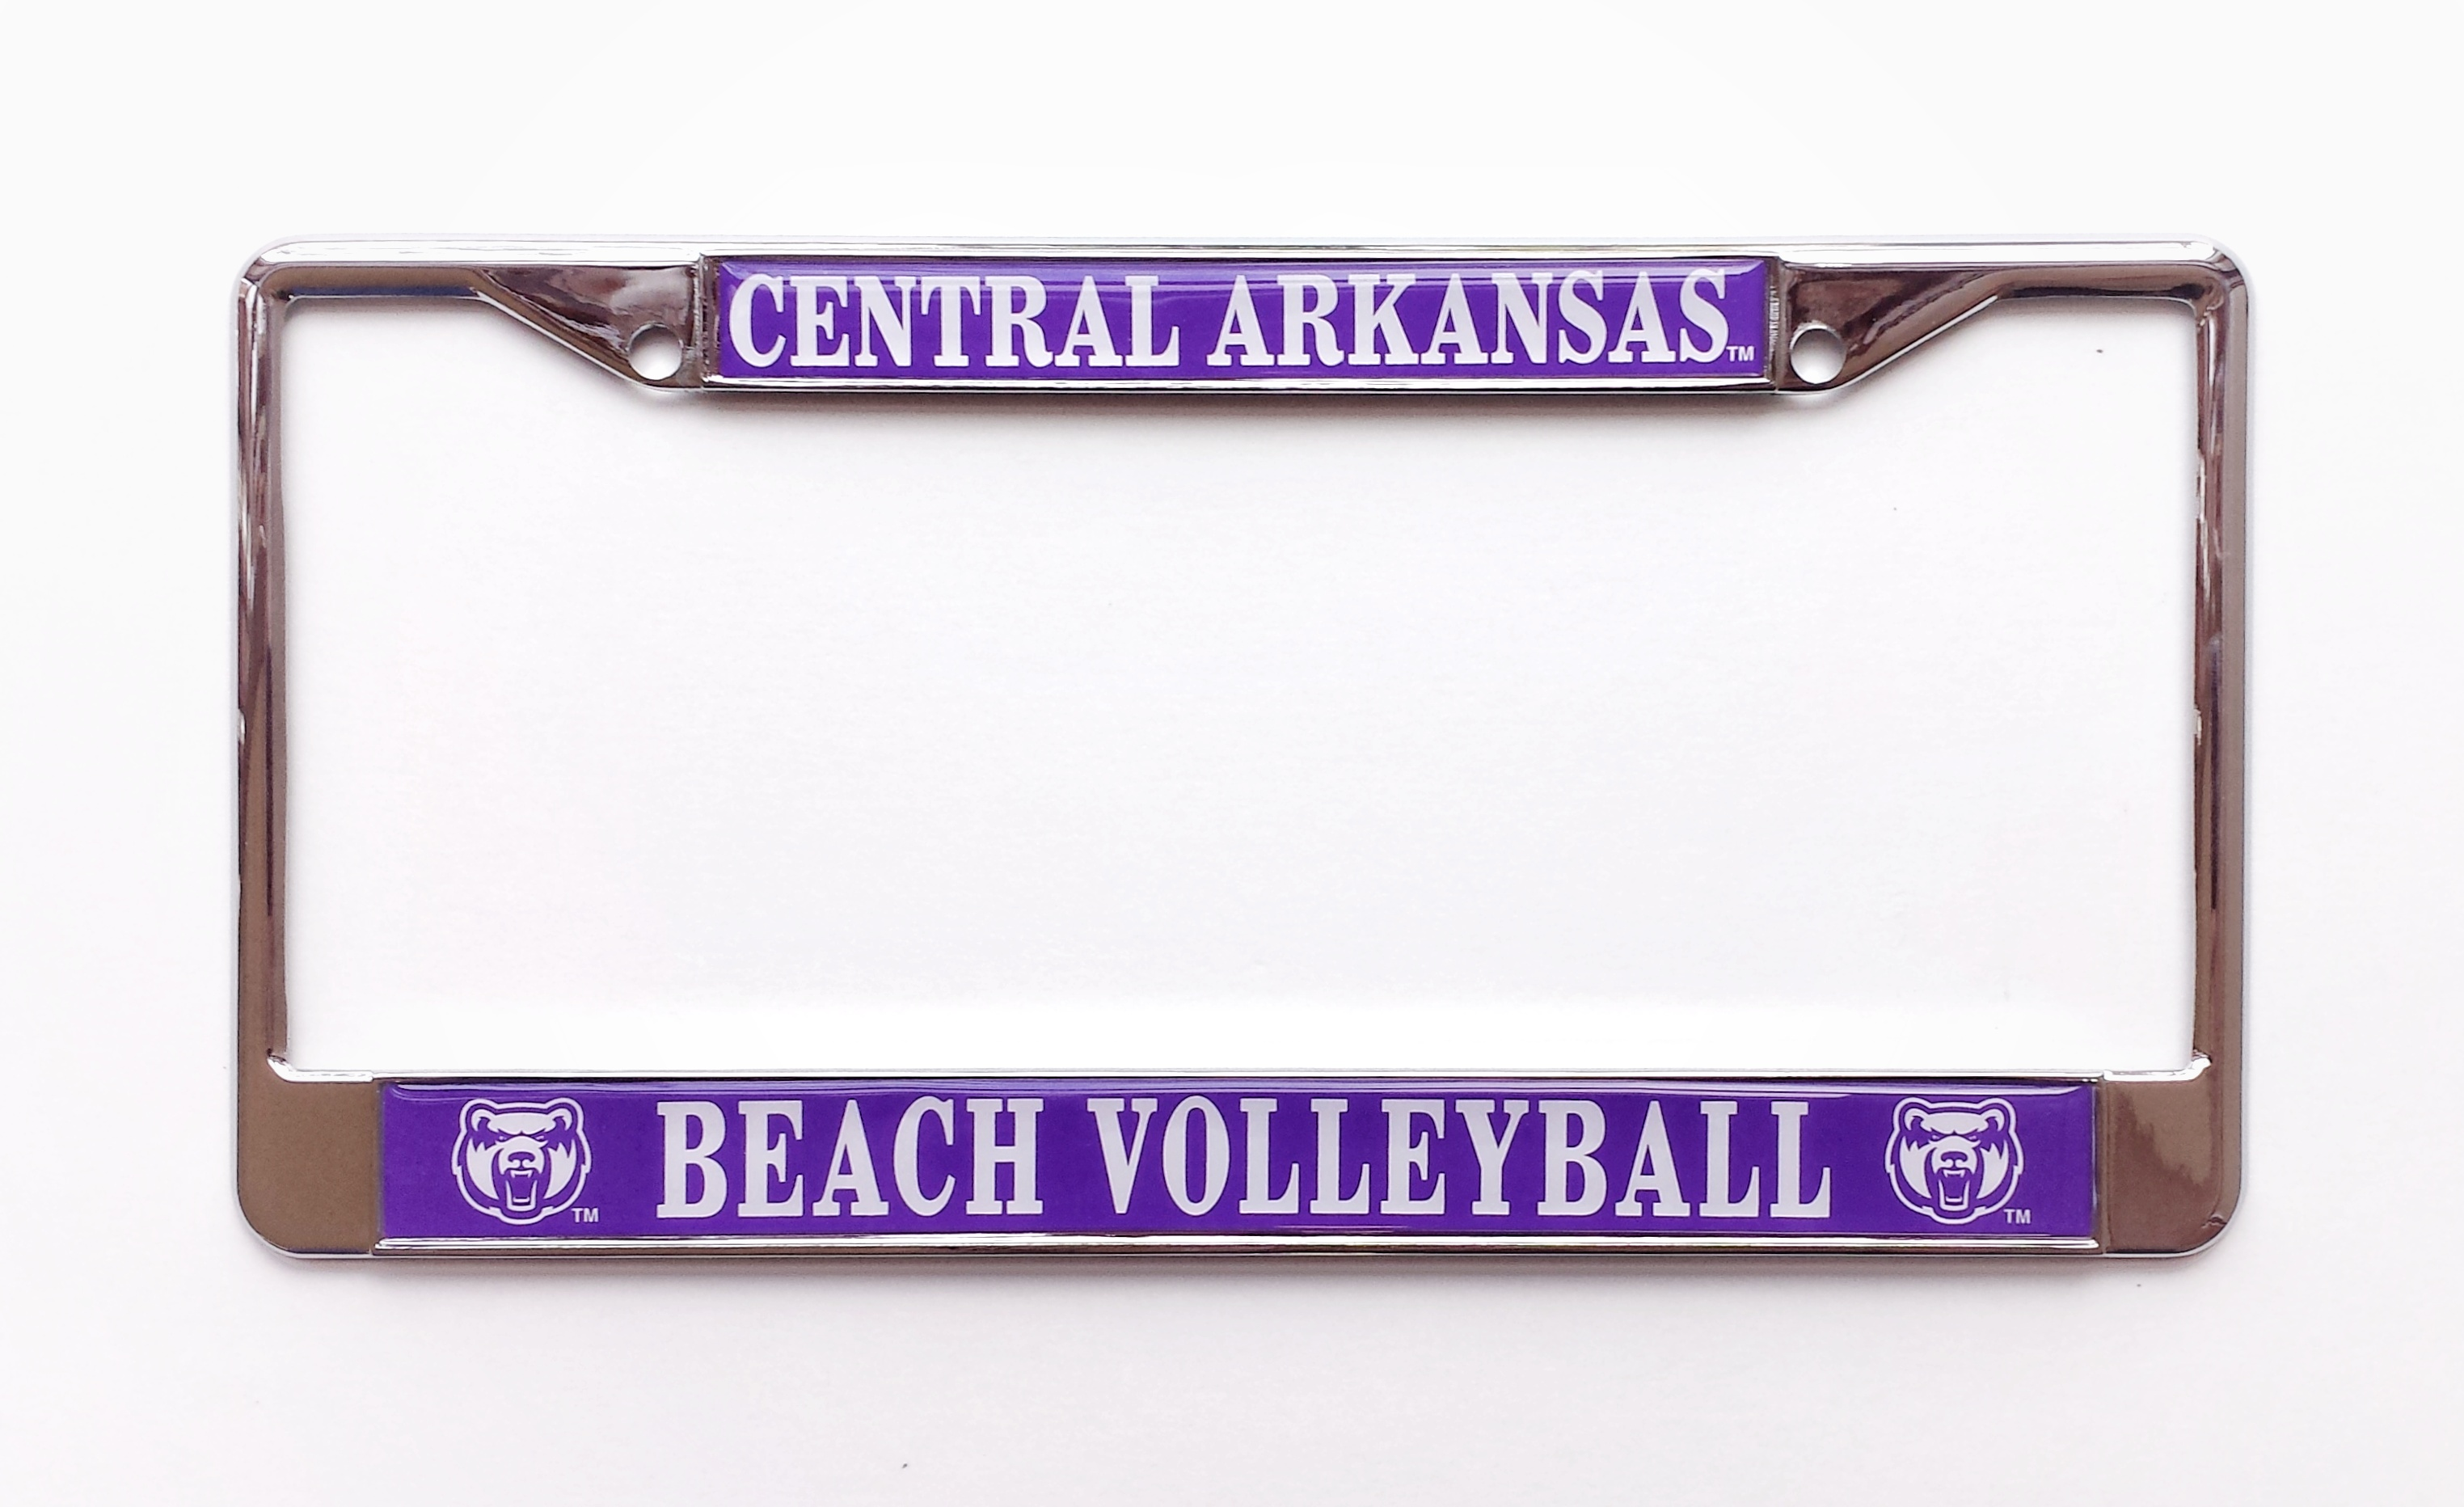 Beach Volleyball Central Arkansas License Frame